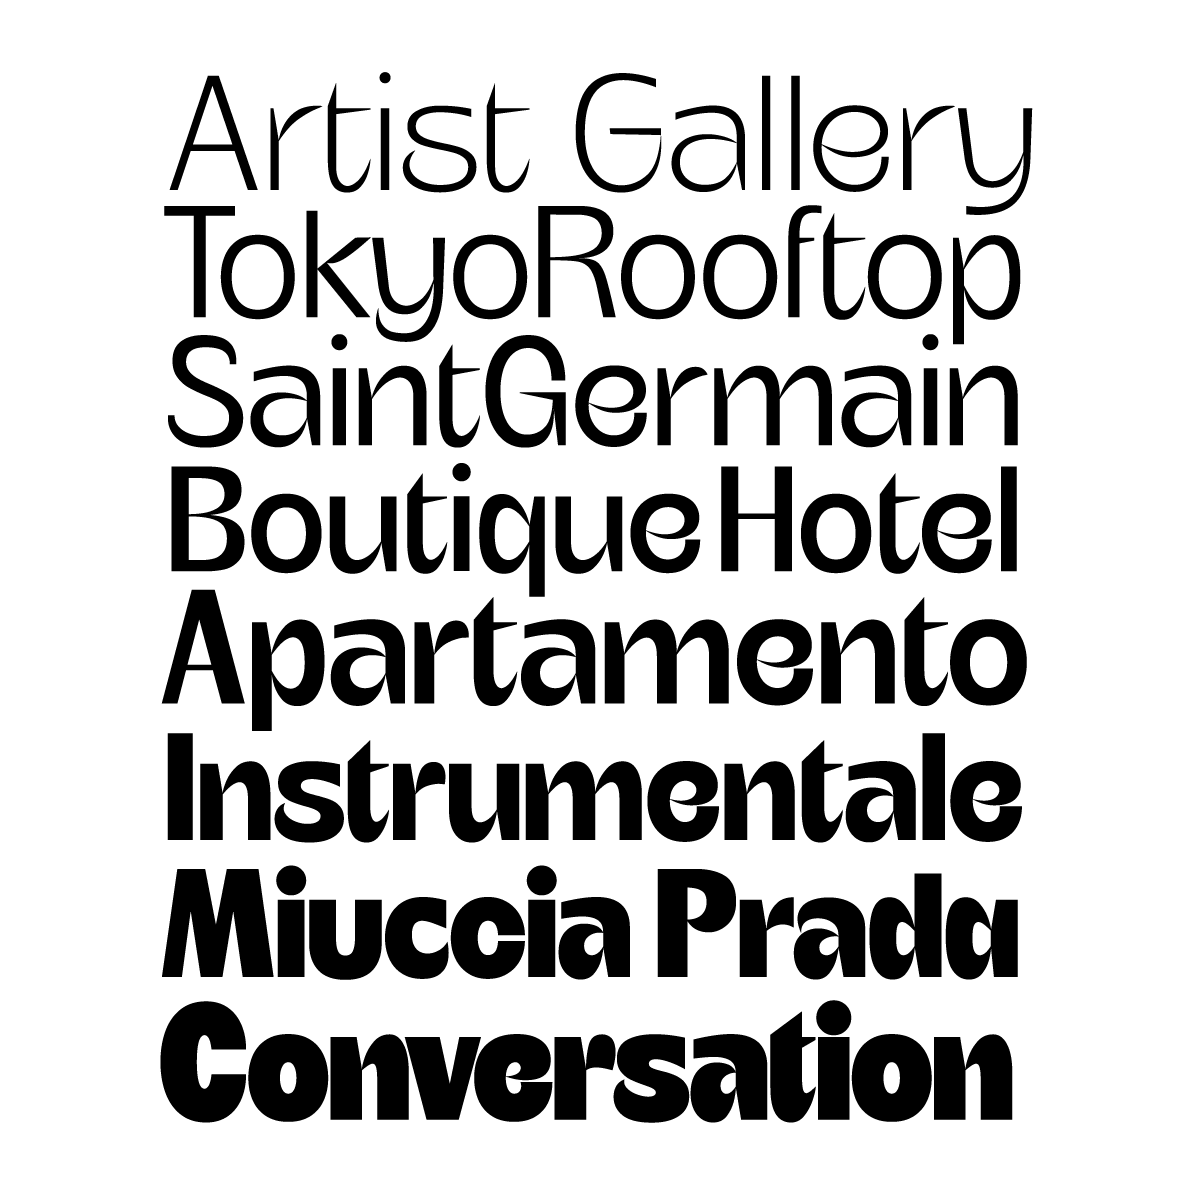 Mochi, a new typeface by Andrei Robu for Typeverything.com